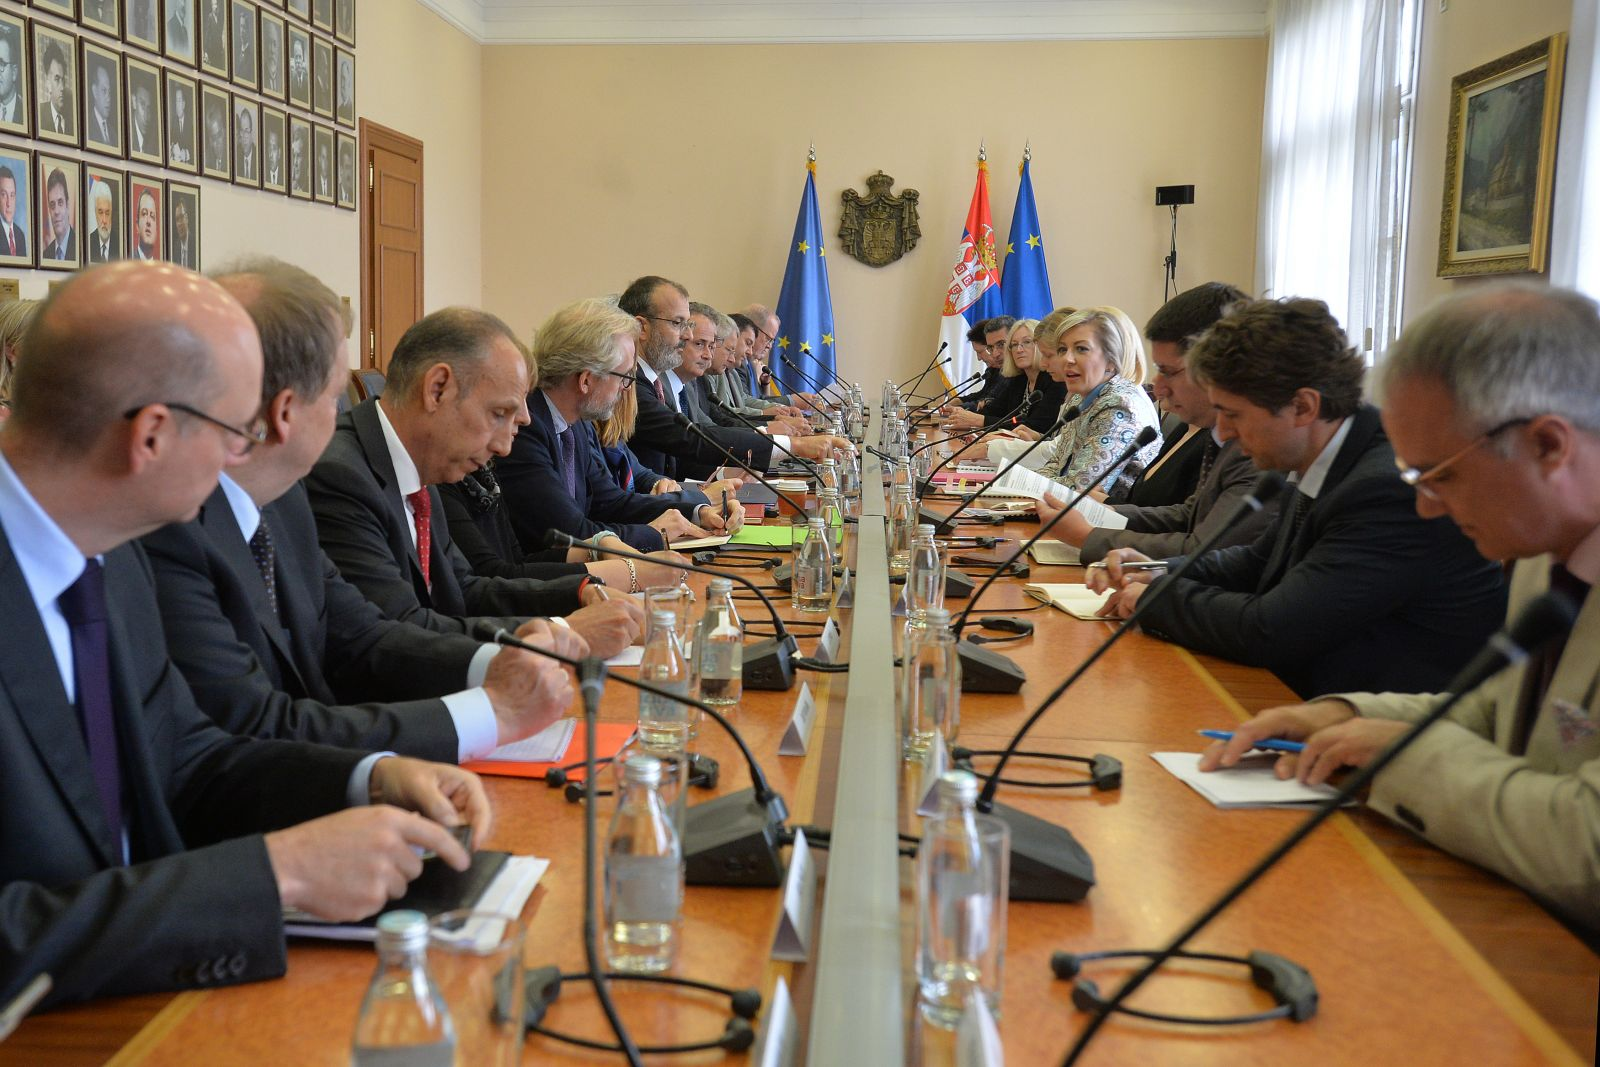 J. Joksimović holds discussions with EU Member States' ambassadors and the Head of the EU Delegation concerning the EC Report